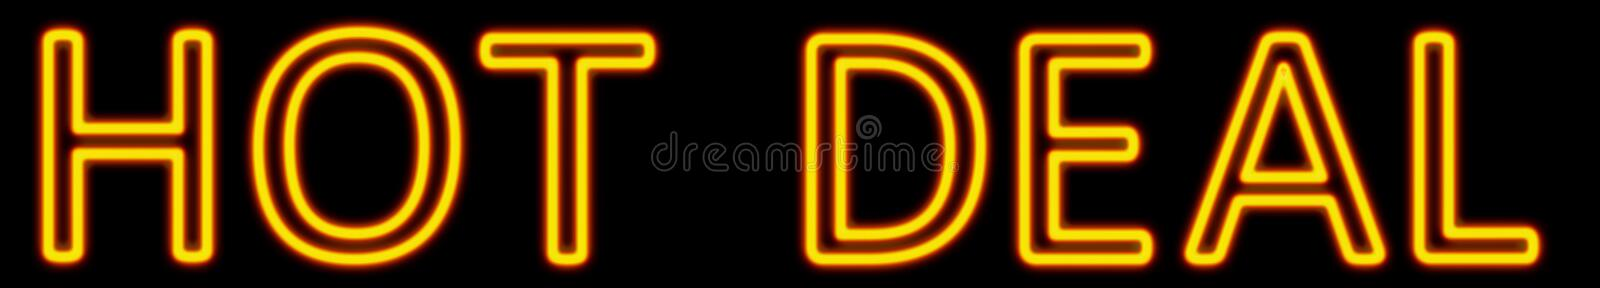 Hot deal neon sign royalty free illustration